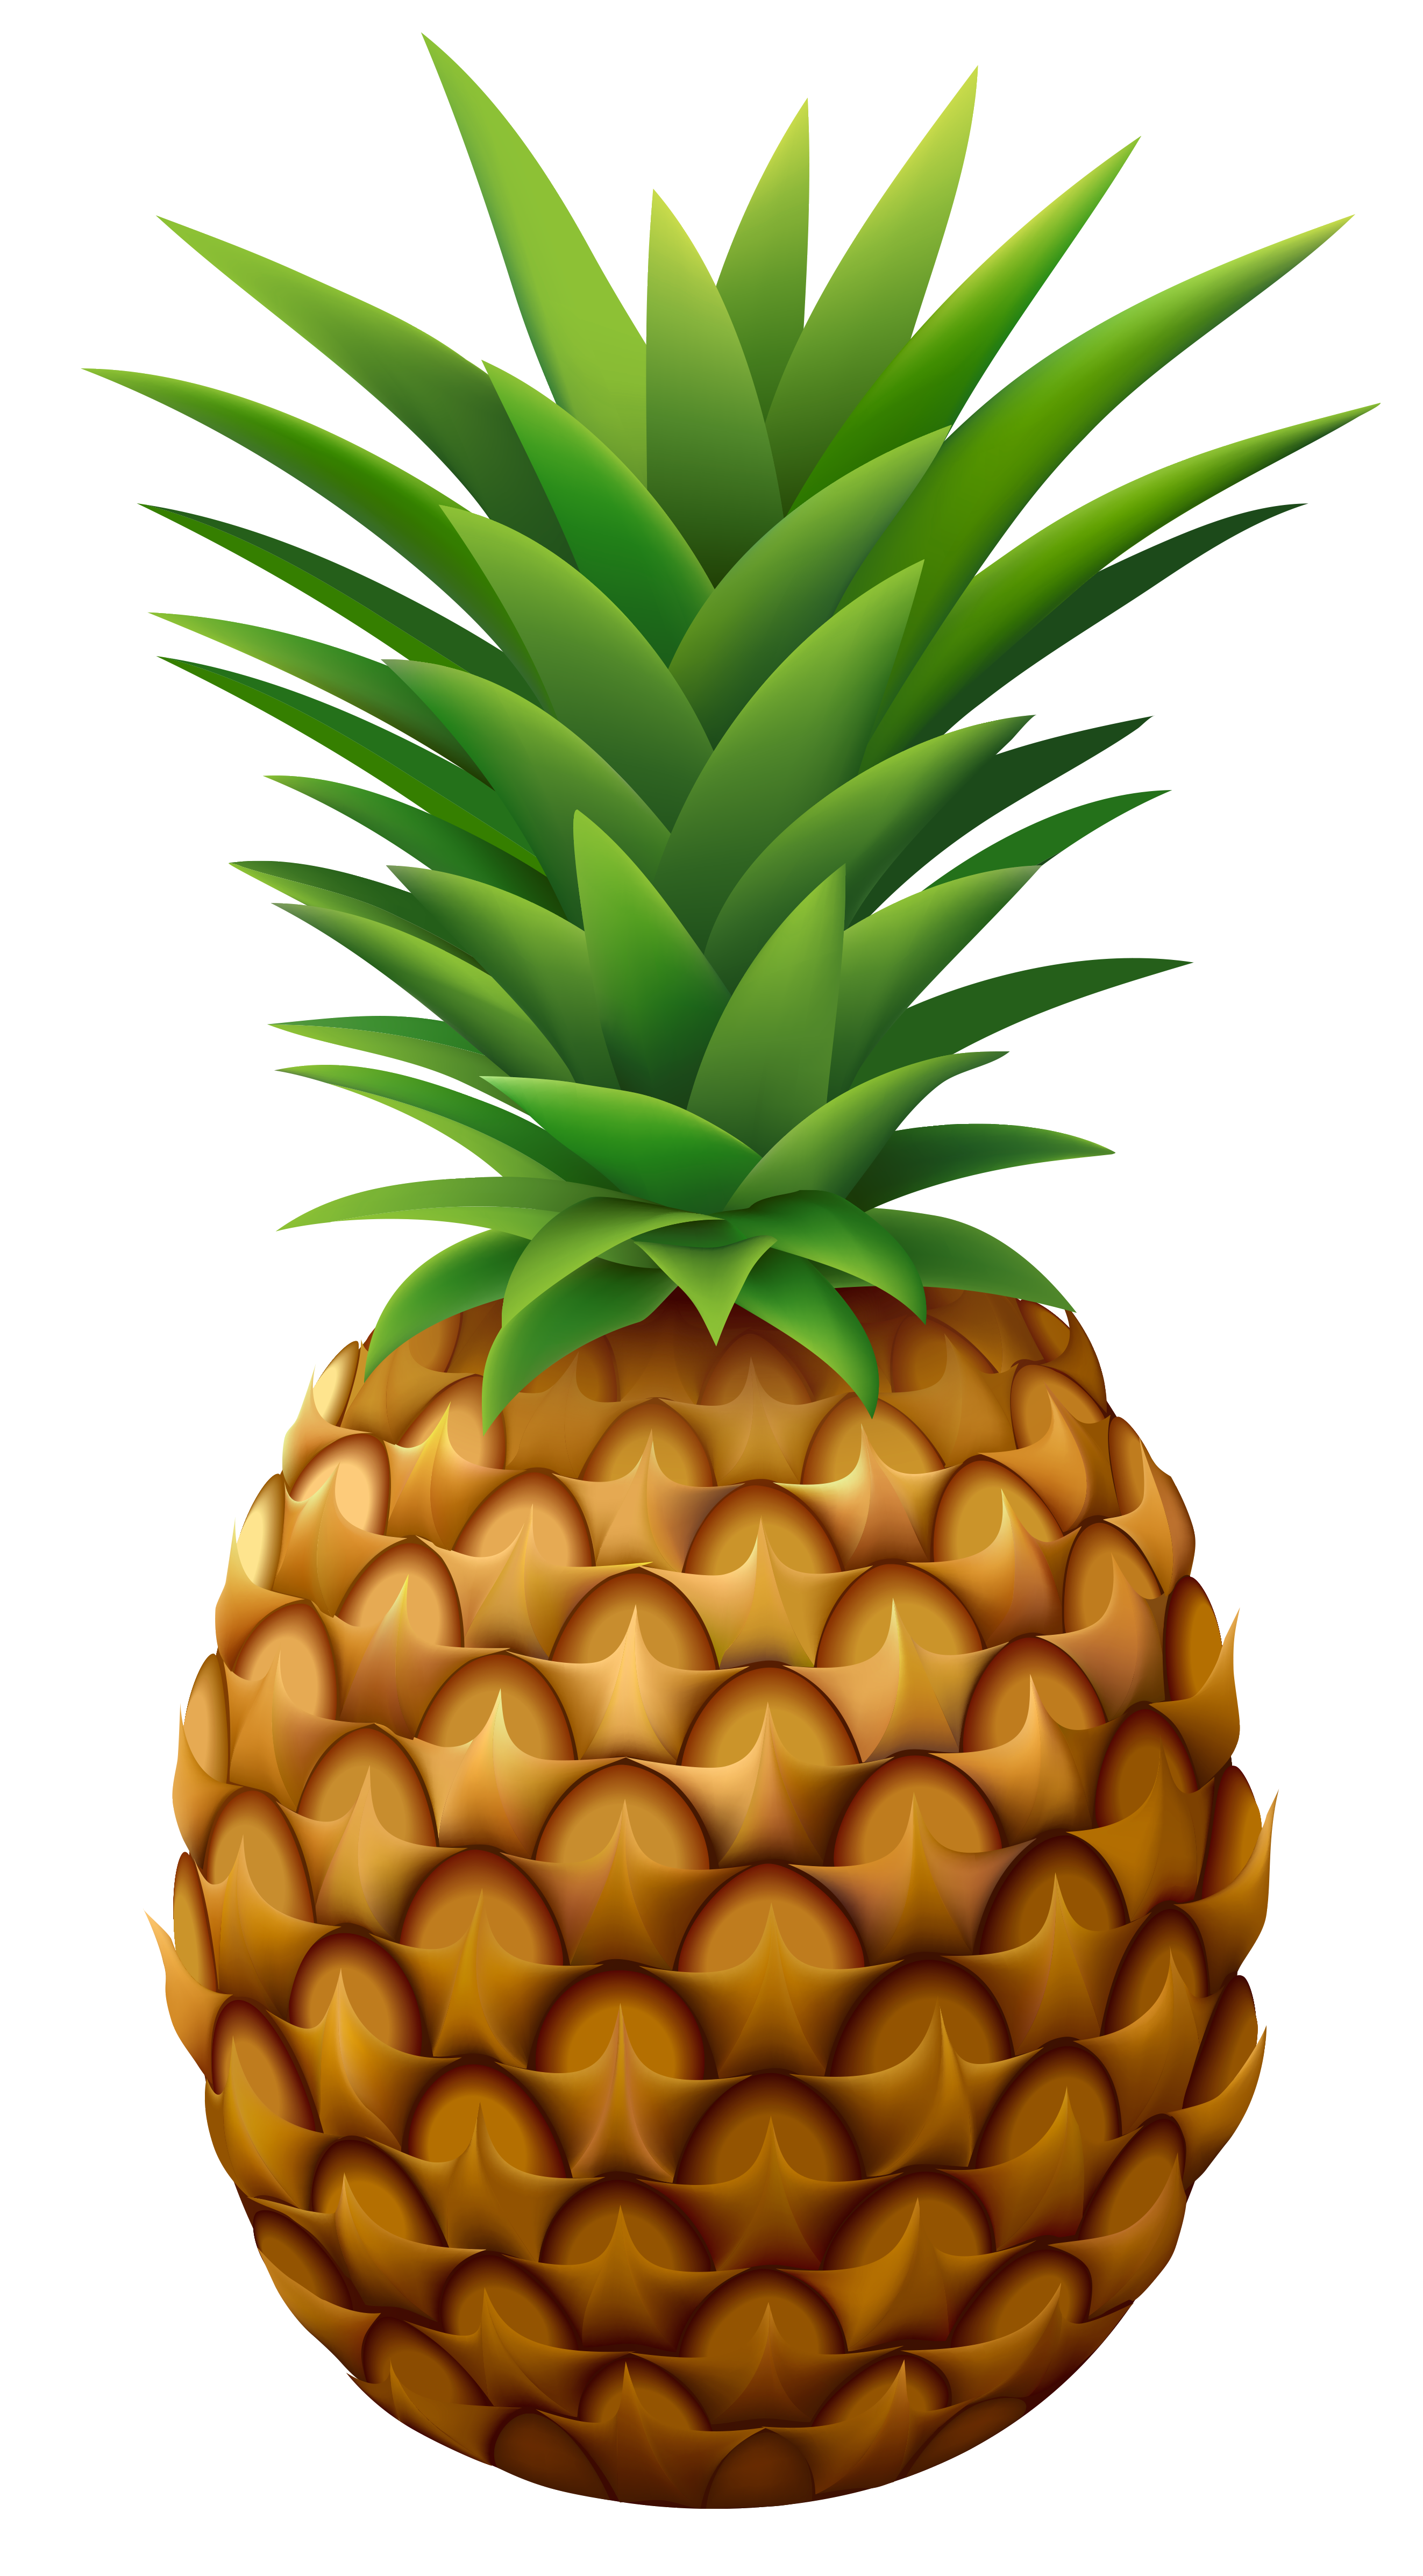 Pineapple Png Vector Clipart Image Gallery Yopriceville High Quality Images And Transparent Png Free Clipa Pineapple Images Pineapple Vector Pineapple Art